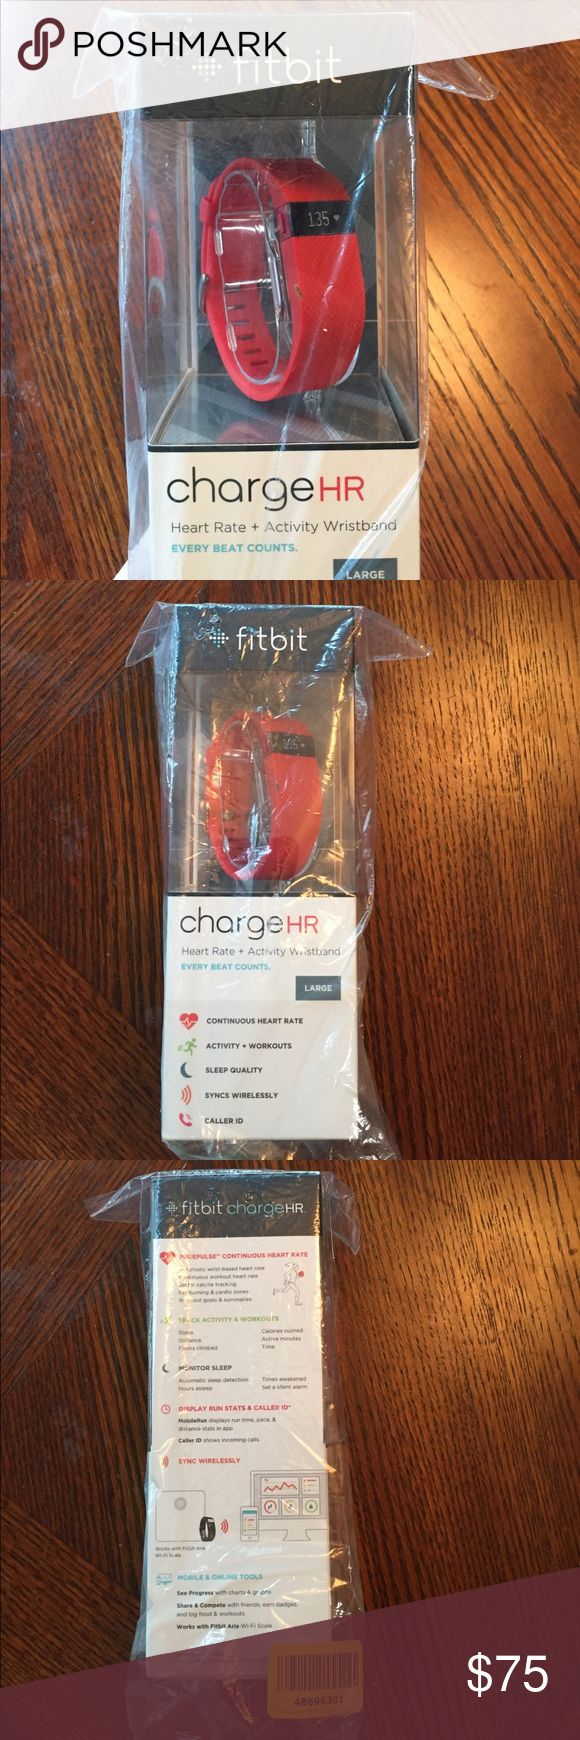 Fitbit Charge HR Fitbit Charge HR (large wristband) in adorable Tangerine color. New!!!     *Only taken out to try on and was too large for my wrist.* Fitbit Other